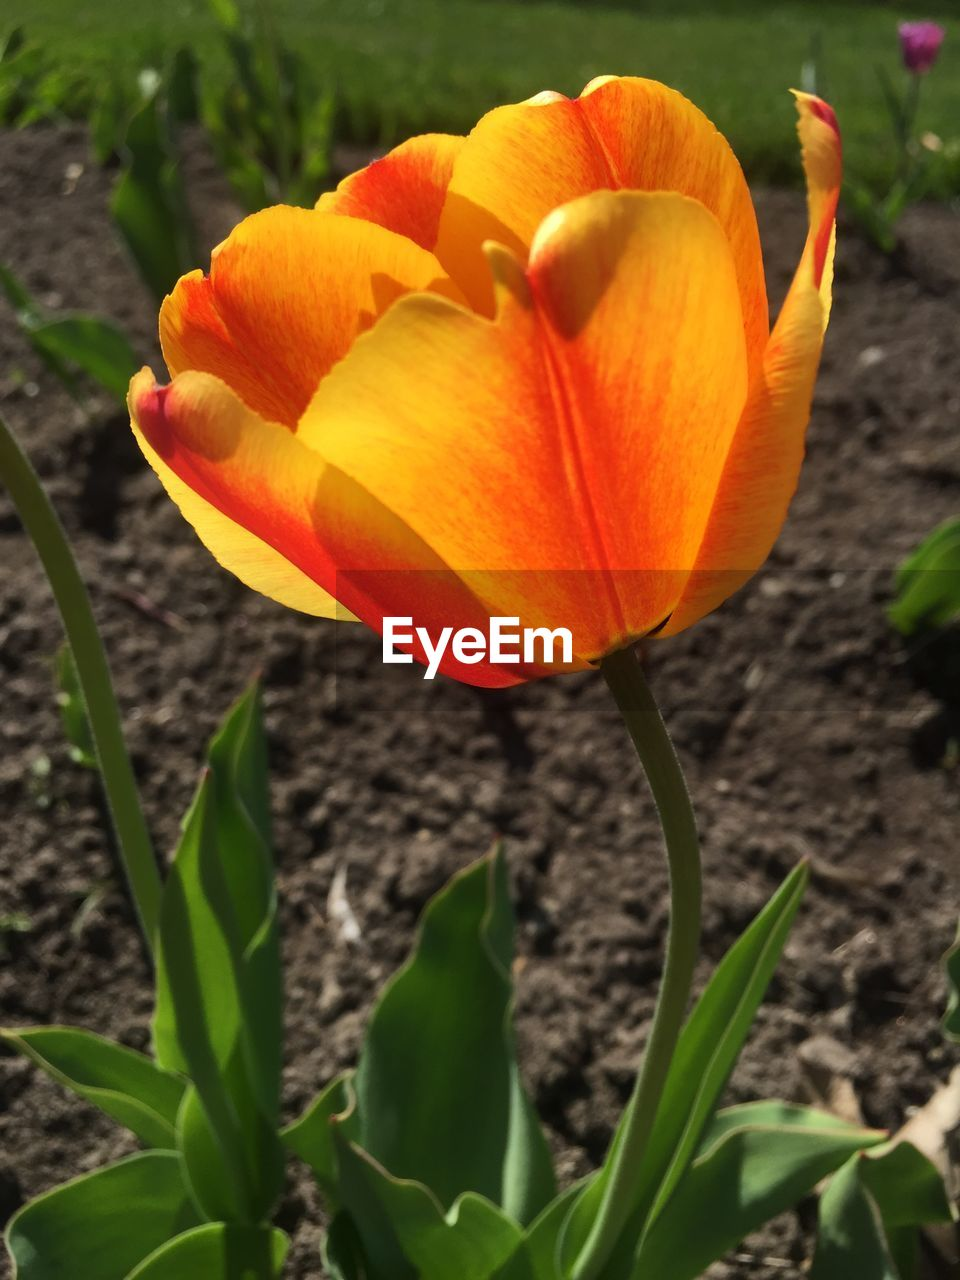 flower, petal, beauty in nature, flower head, fragility, nature, freshness, growth, orange color, plant, blooming, outdoors, day, close-up, no people, leaf, day lily, crocus